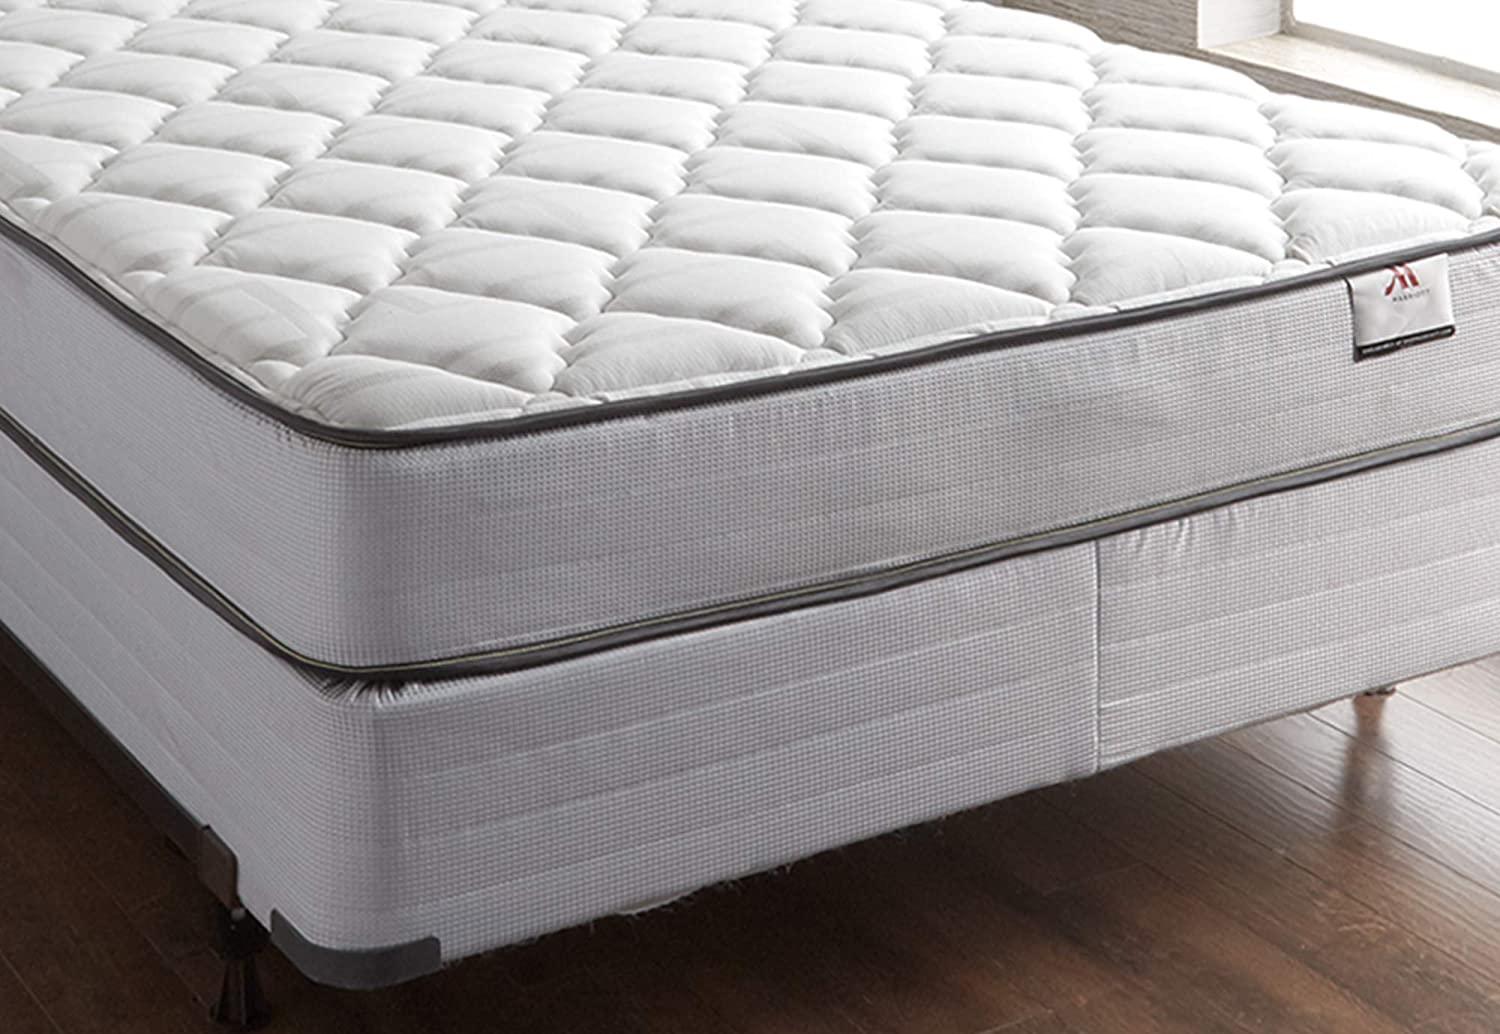 Amazon.com: Marriott Official Bed - Medium to Firm Support - 9